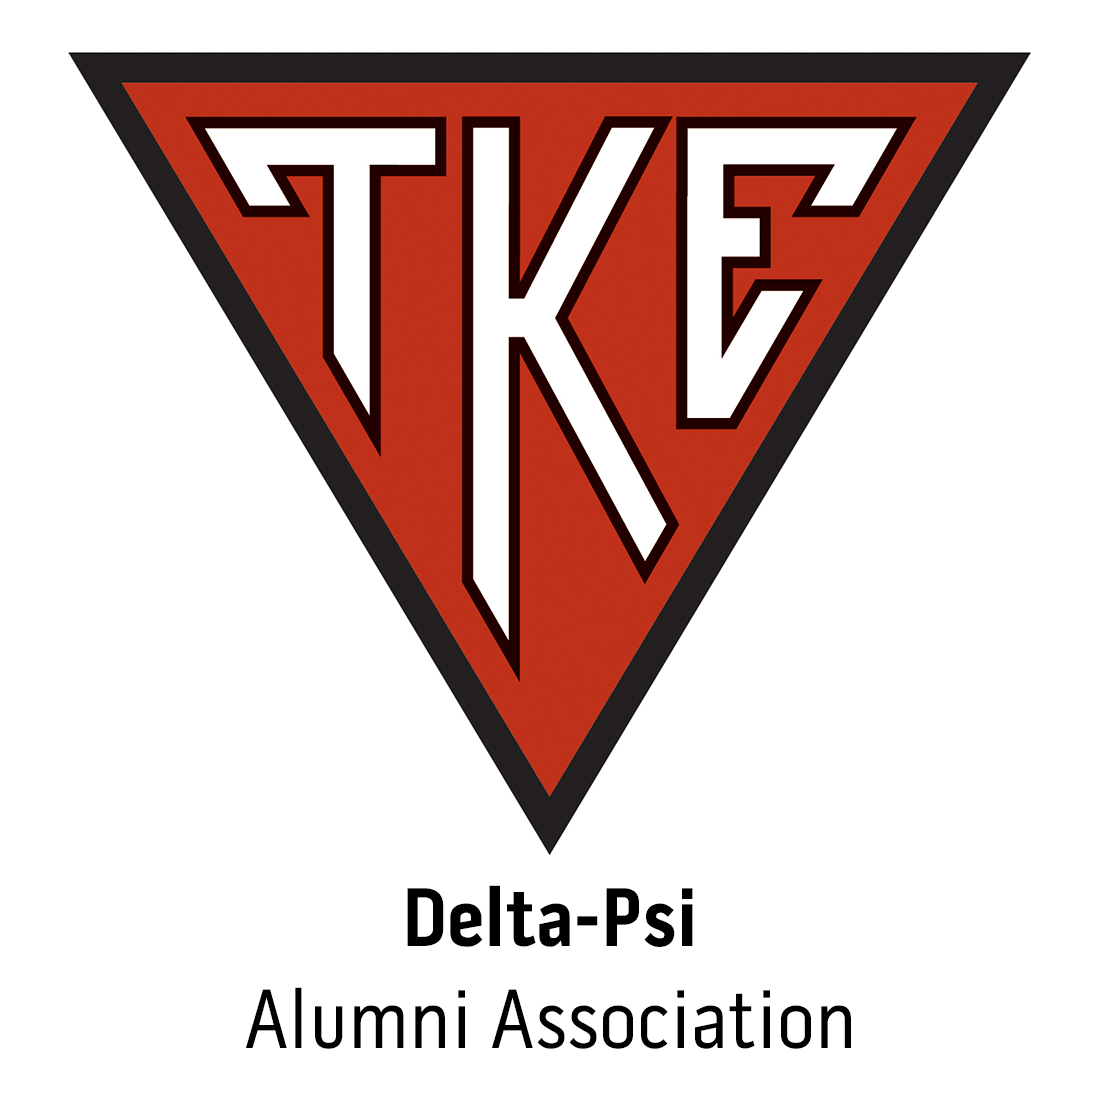 Delta-Psi Alumni Association at North Dakota State University